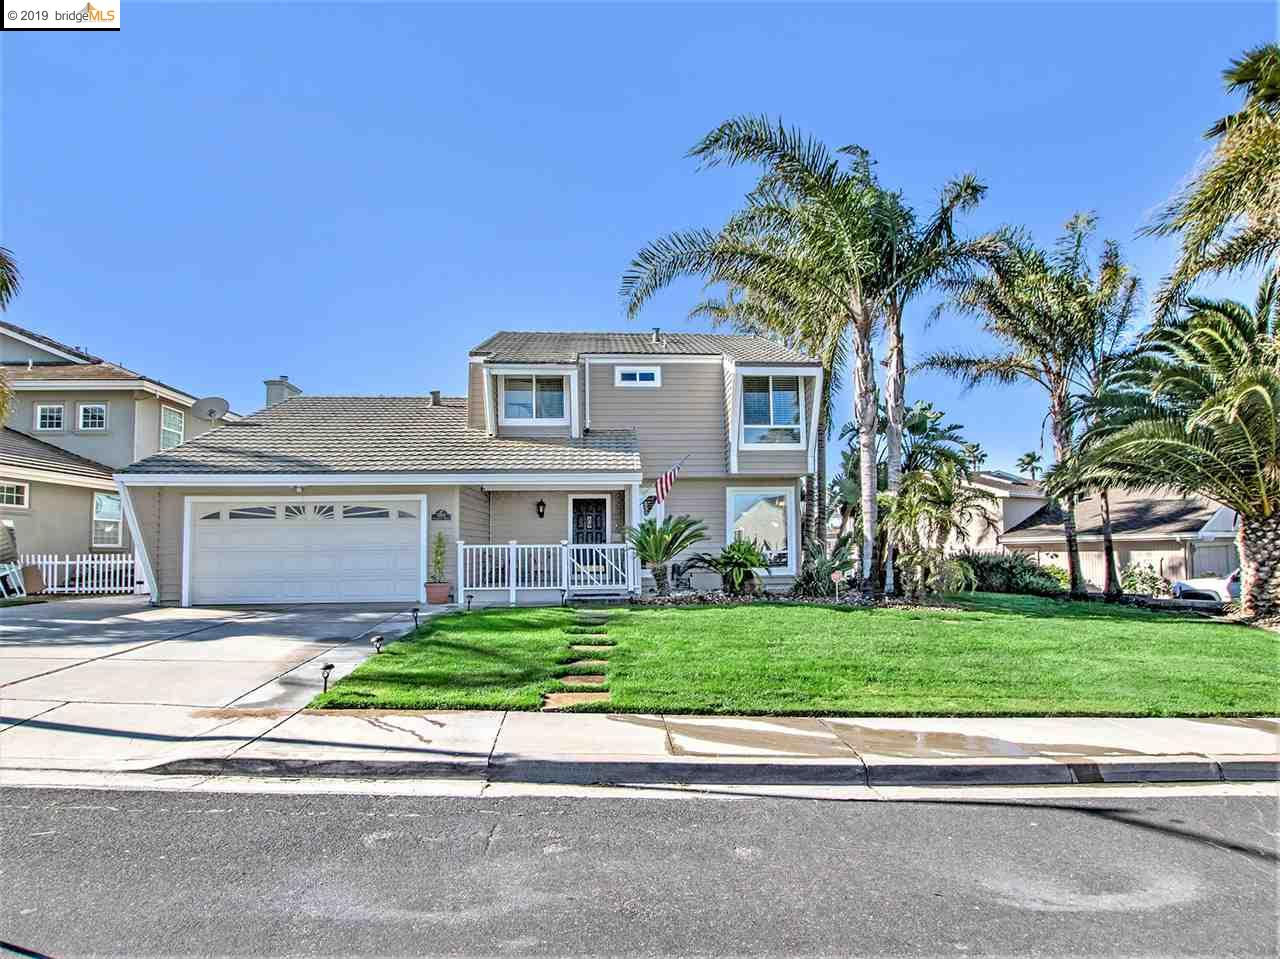 5560 Starboard Dr, DISCOVERY BAY, CA 94505